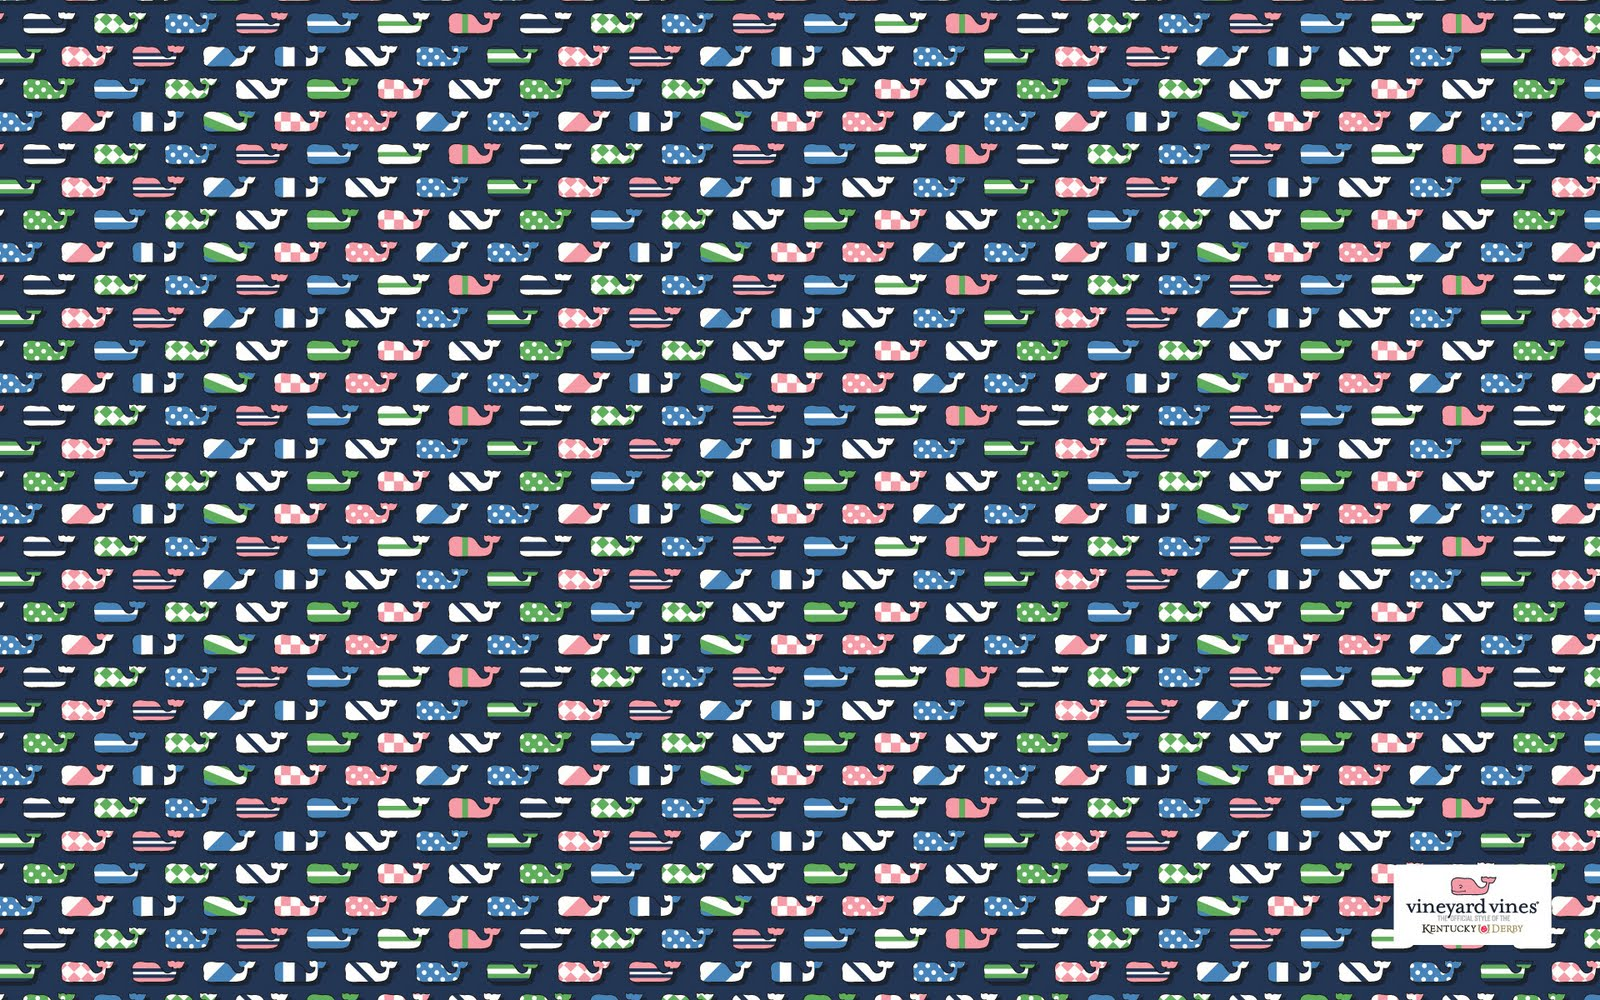 Best 52 Vineyard Vines Desktop Background on HipWallpaper 1600x1000